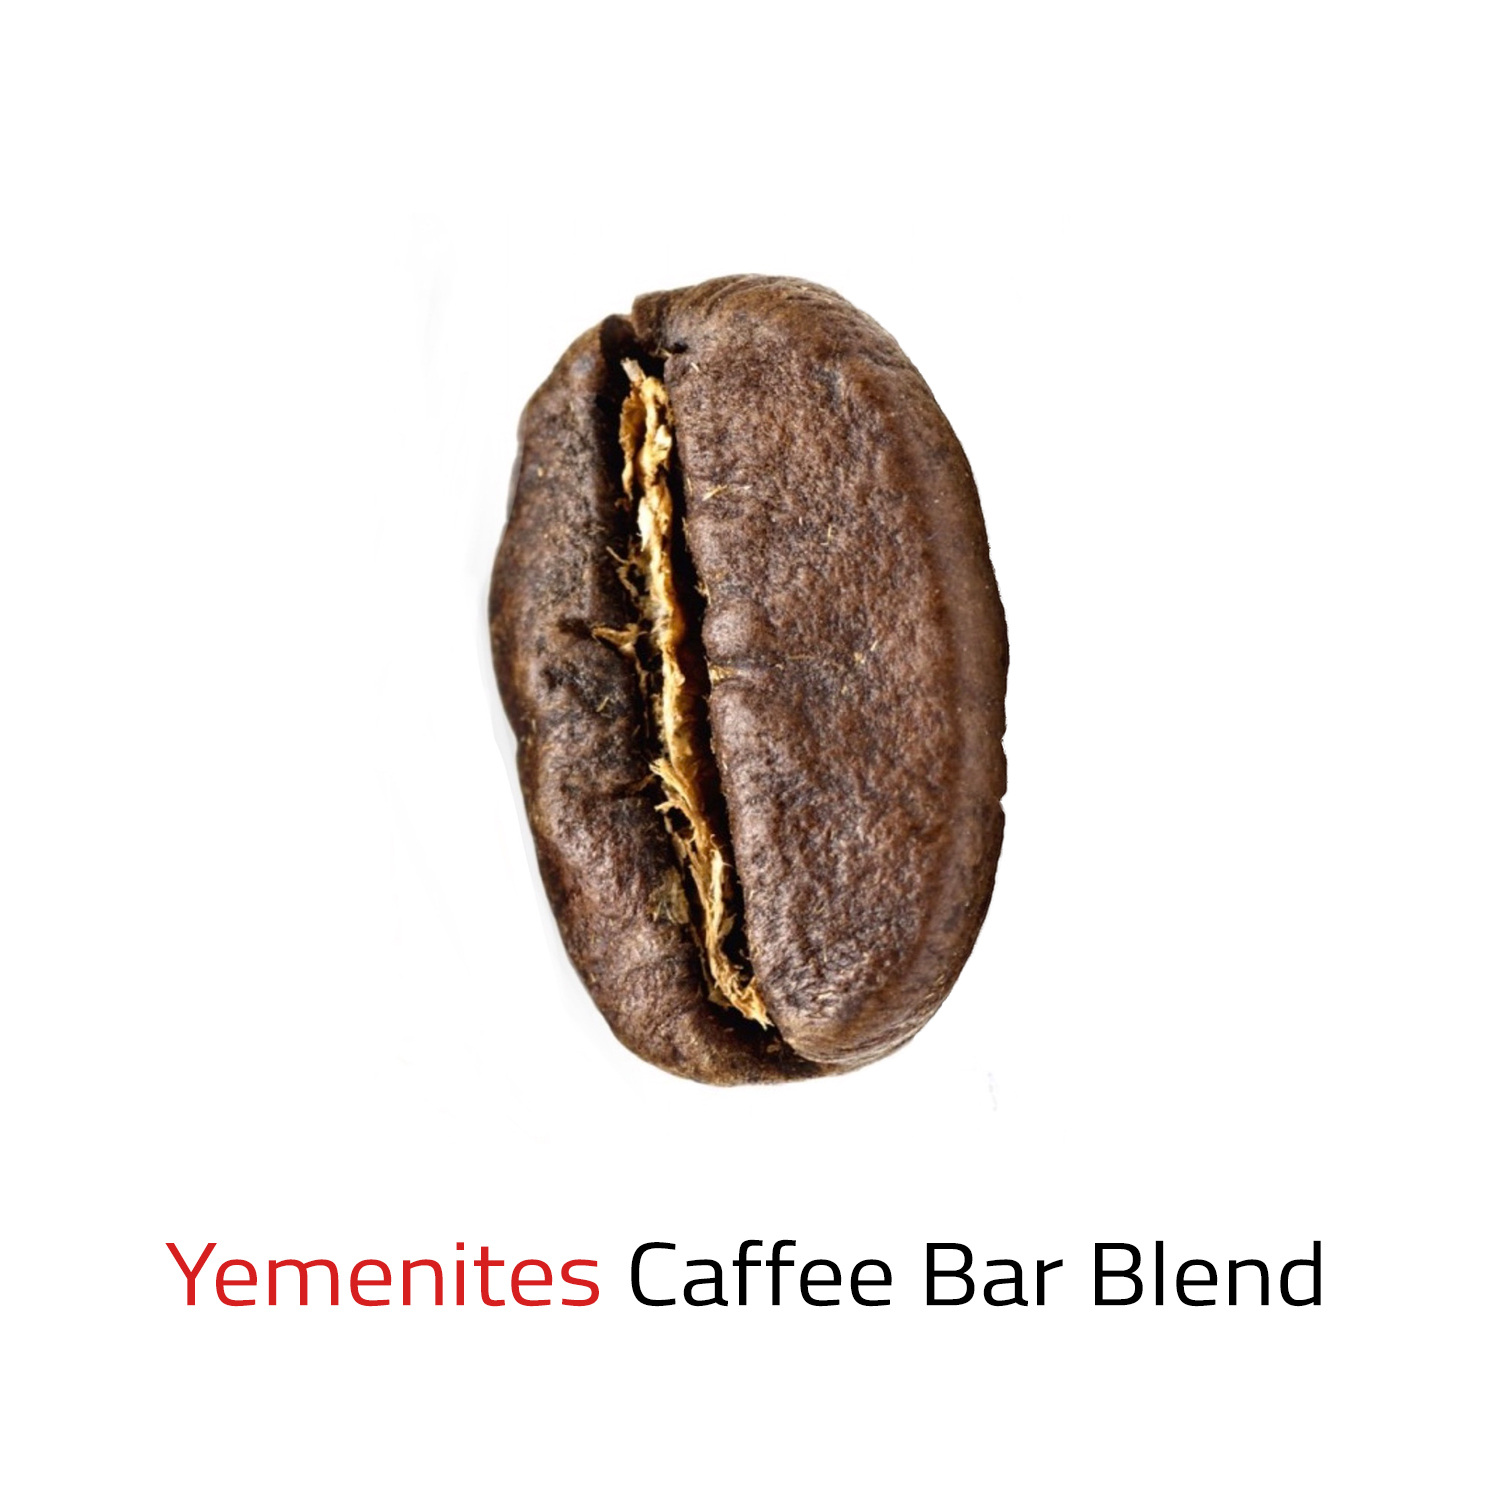 Yemenites Caffee Bar Blend